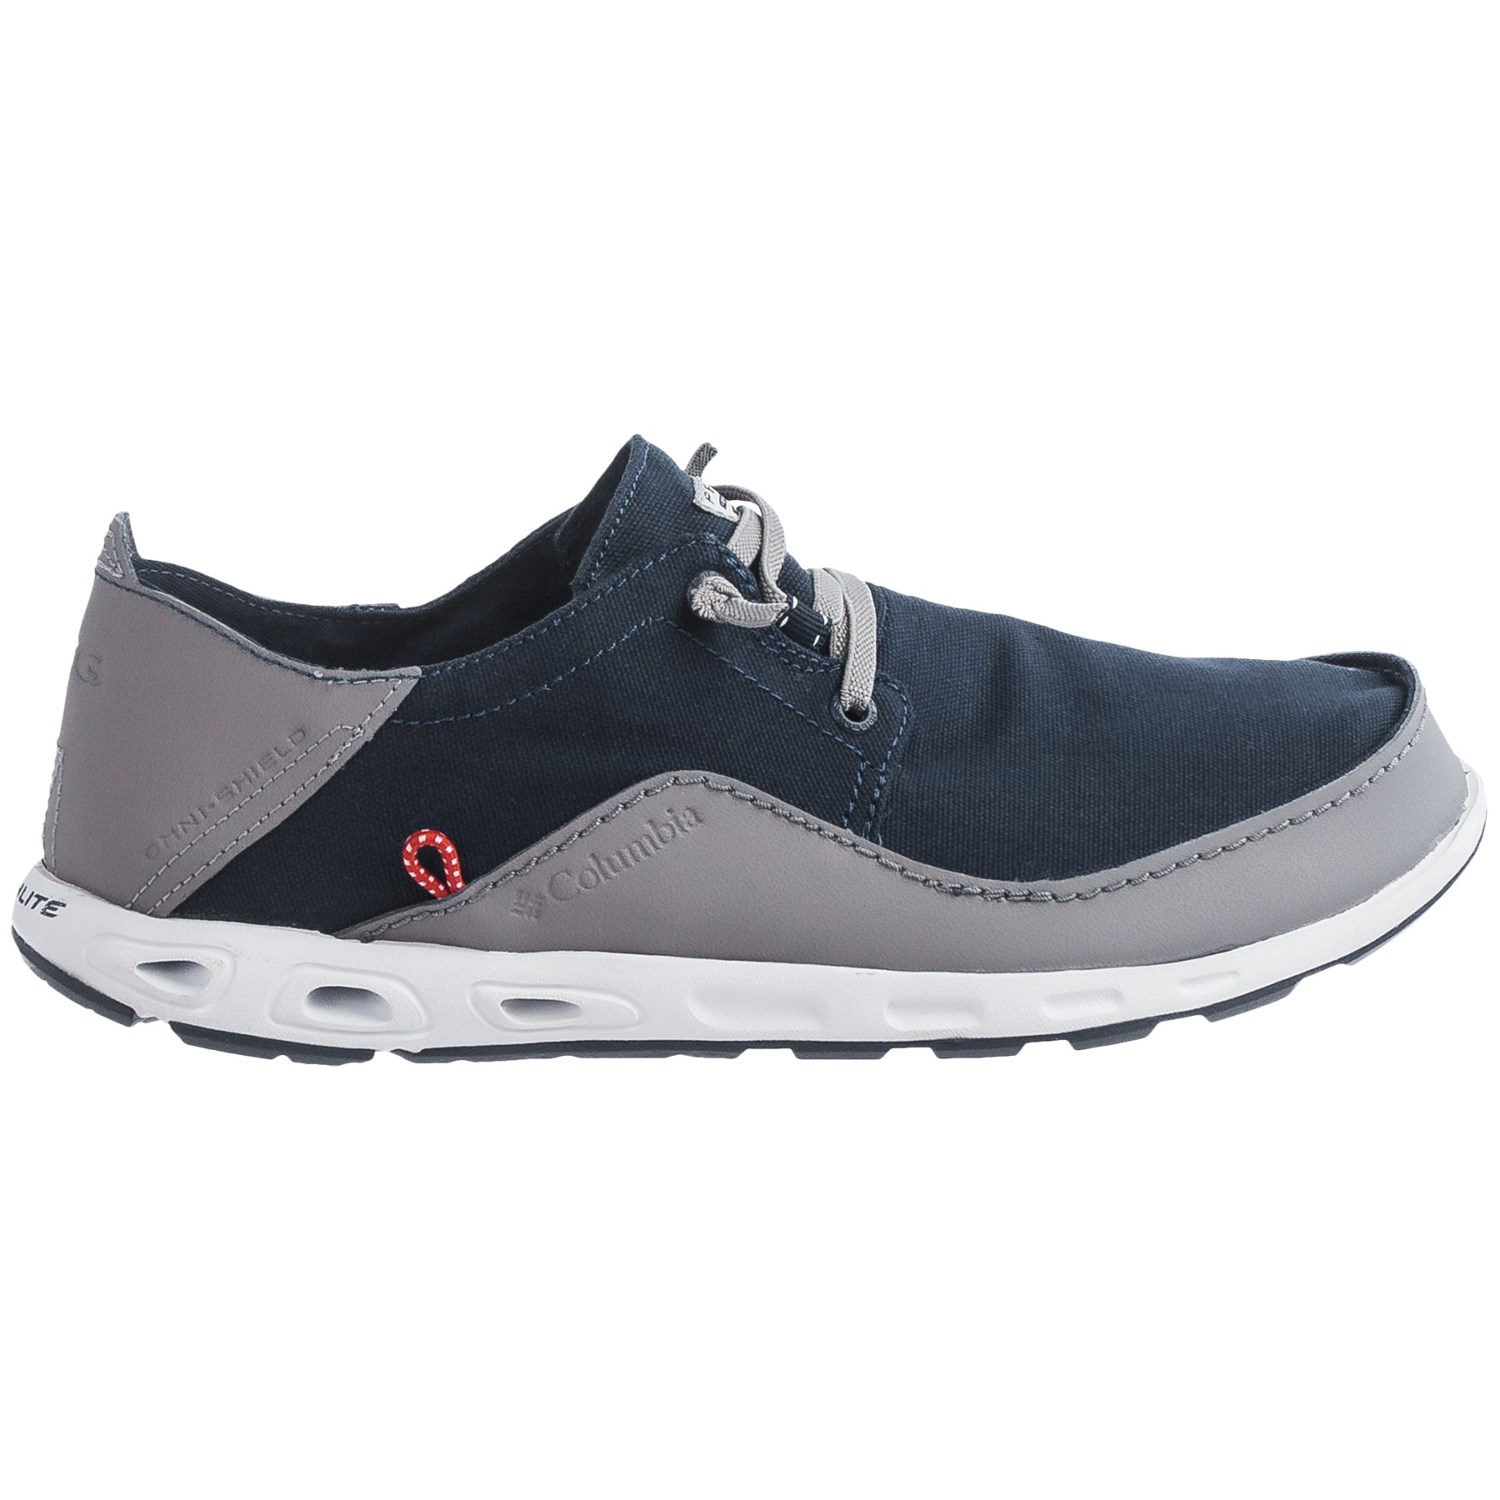 Columbia Sportswear Bahama Vent Relaxed Pfg Shoes For Men